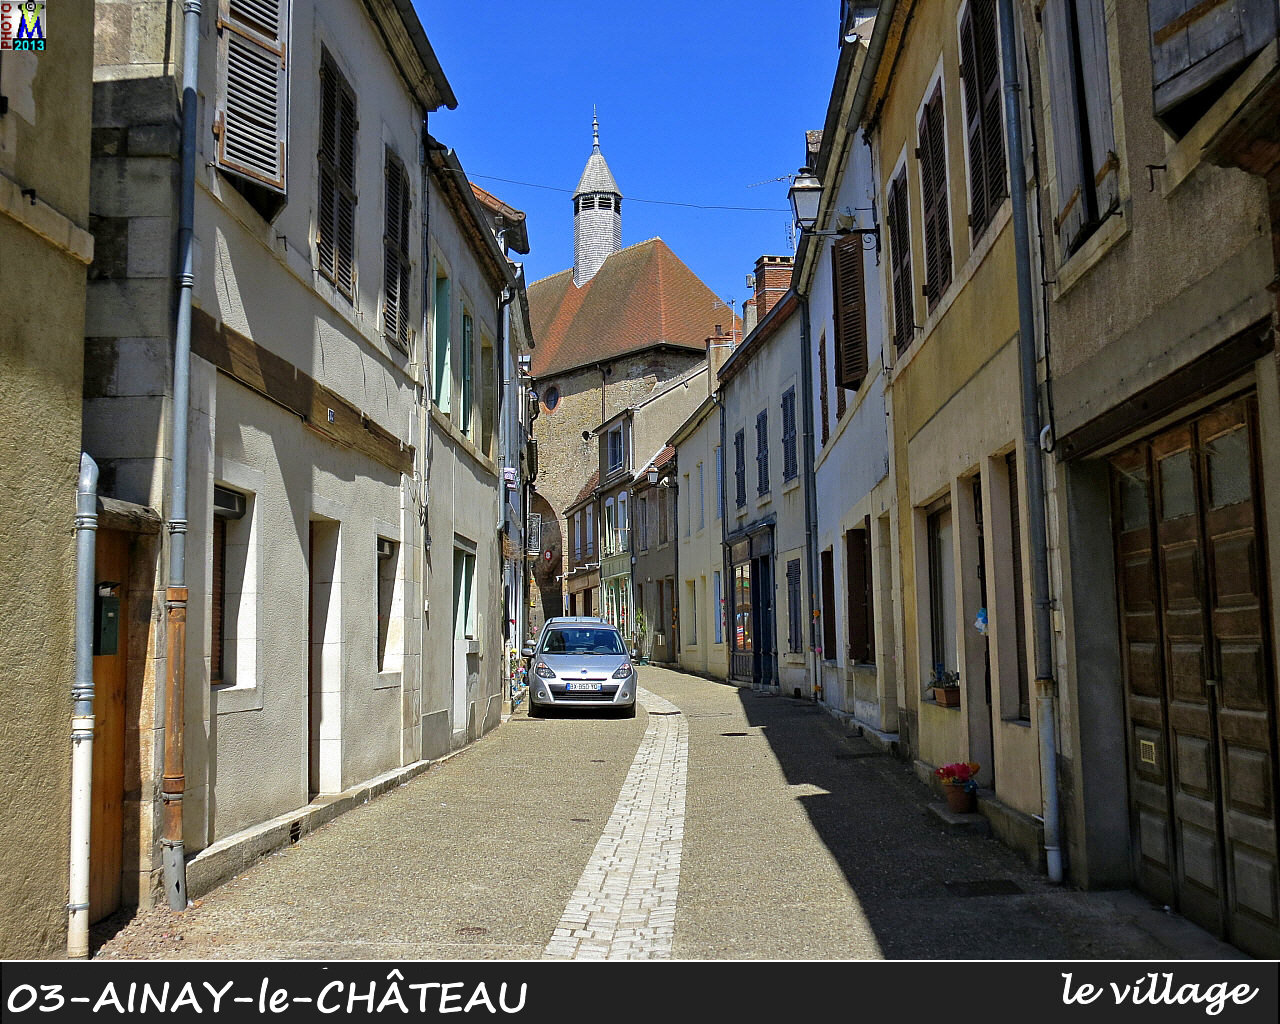 03AINAY-CHATEAU_village_104.jpg